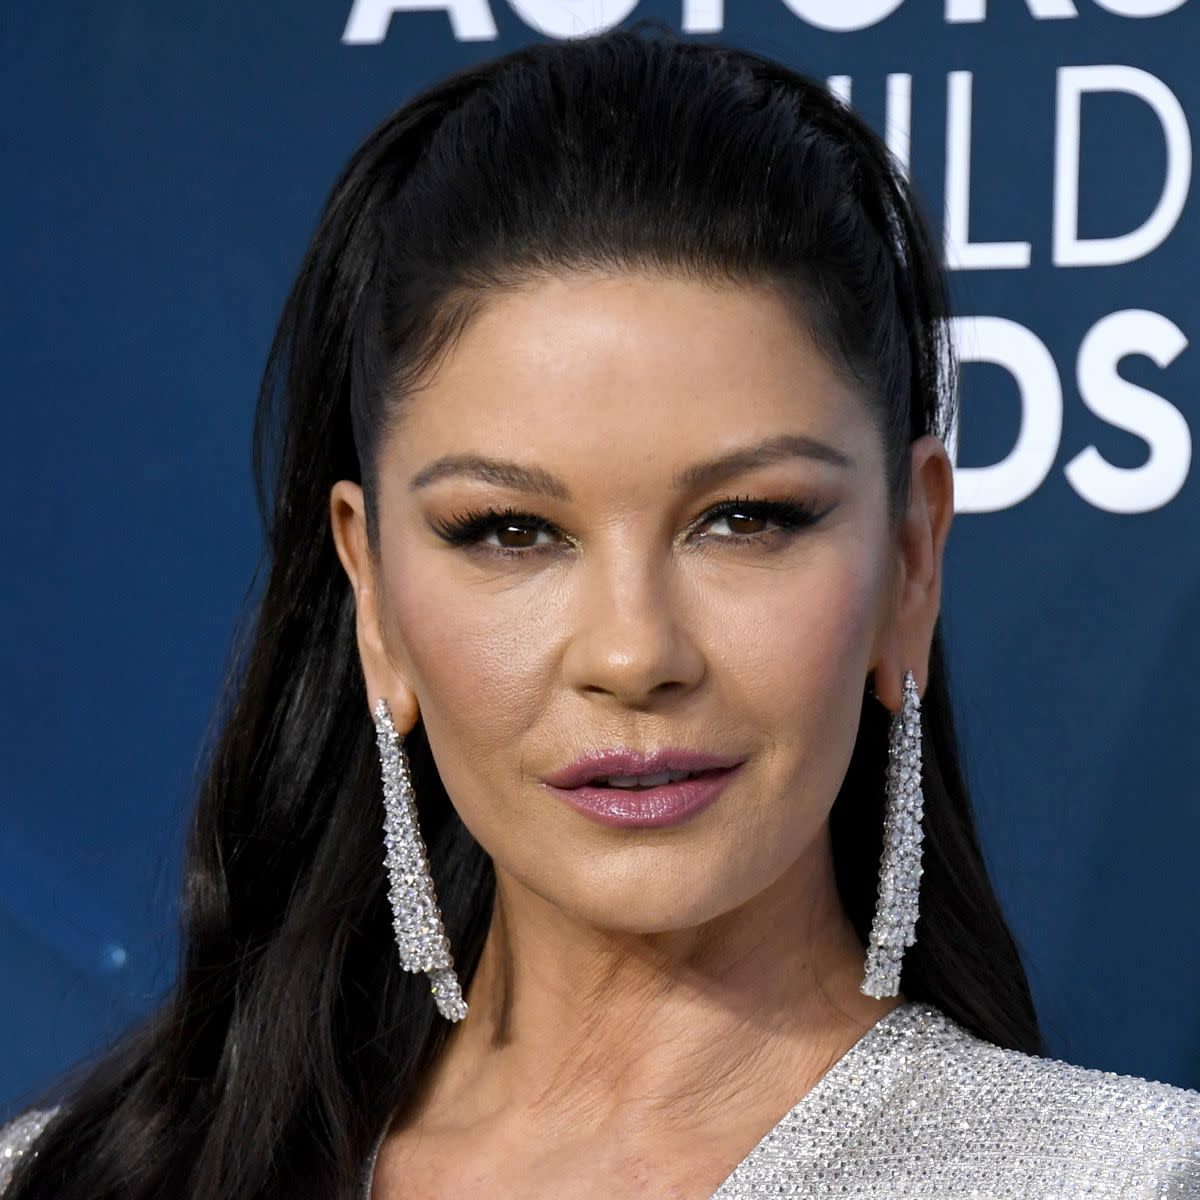 Catherine Zeta-Jones is still gorgeous in her fifties